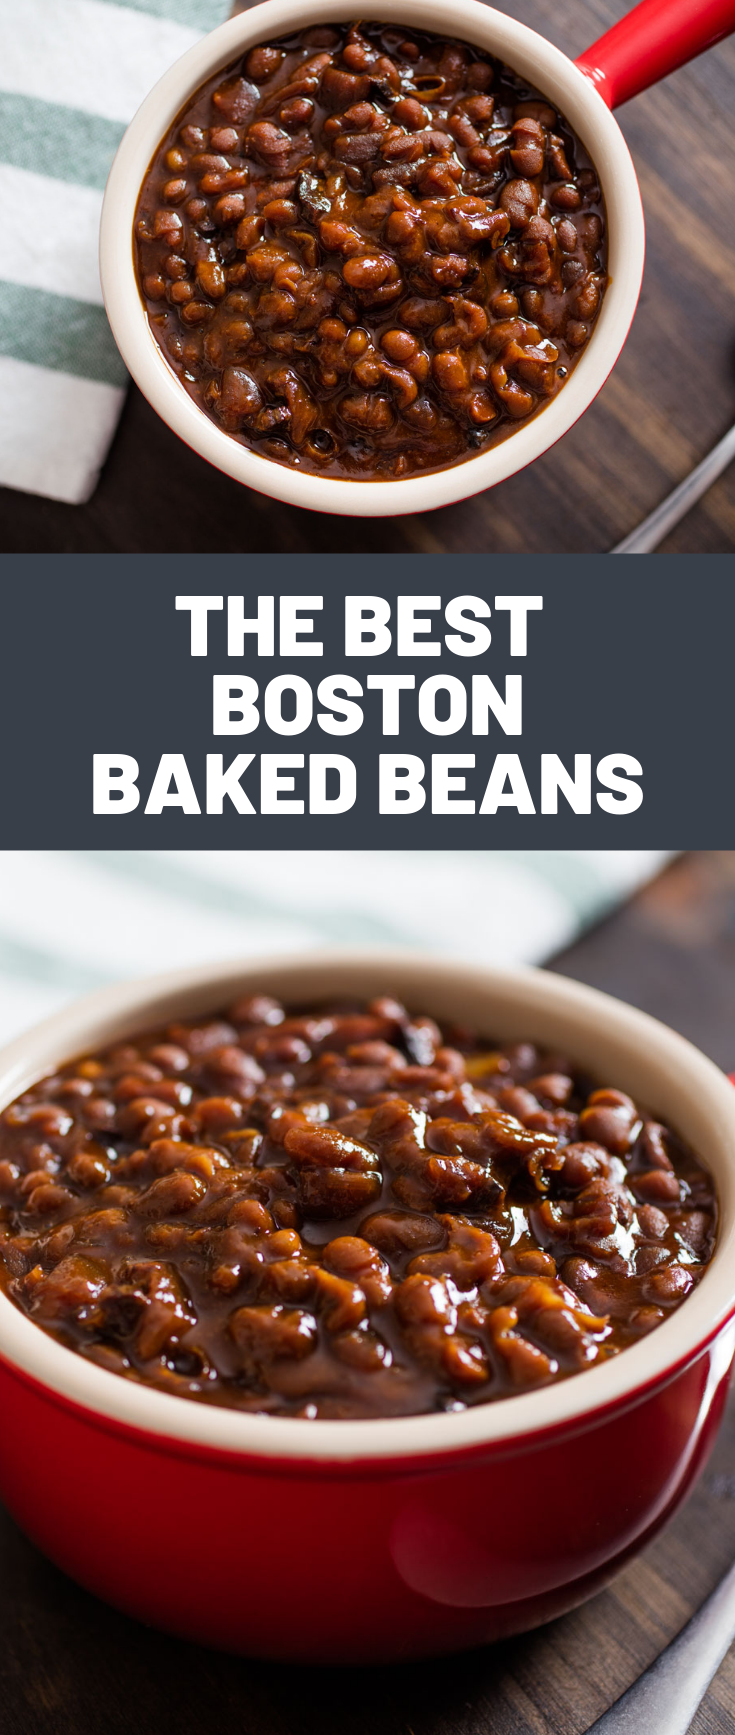 How To Make Boston Baked Beans The Low Slow Old Fashioned Way Baked Bean Recipes Bean Recipes Baked Beans